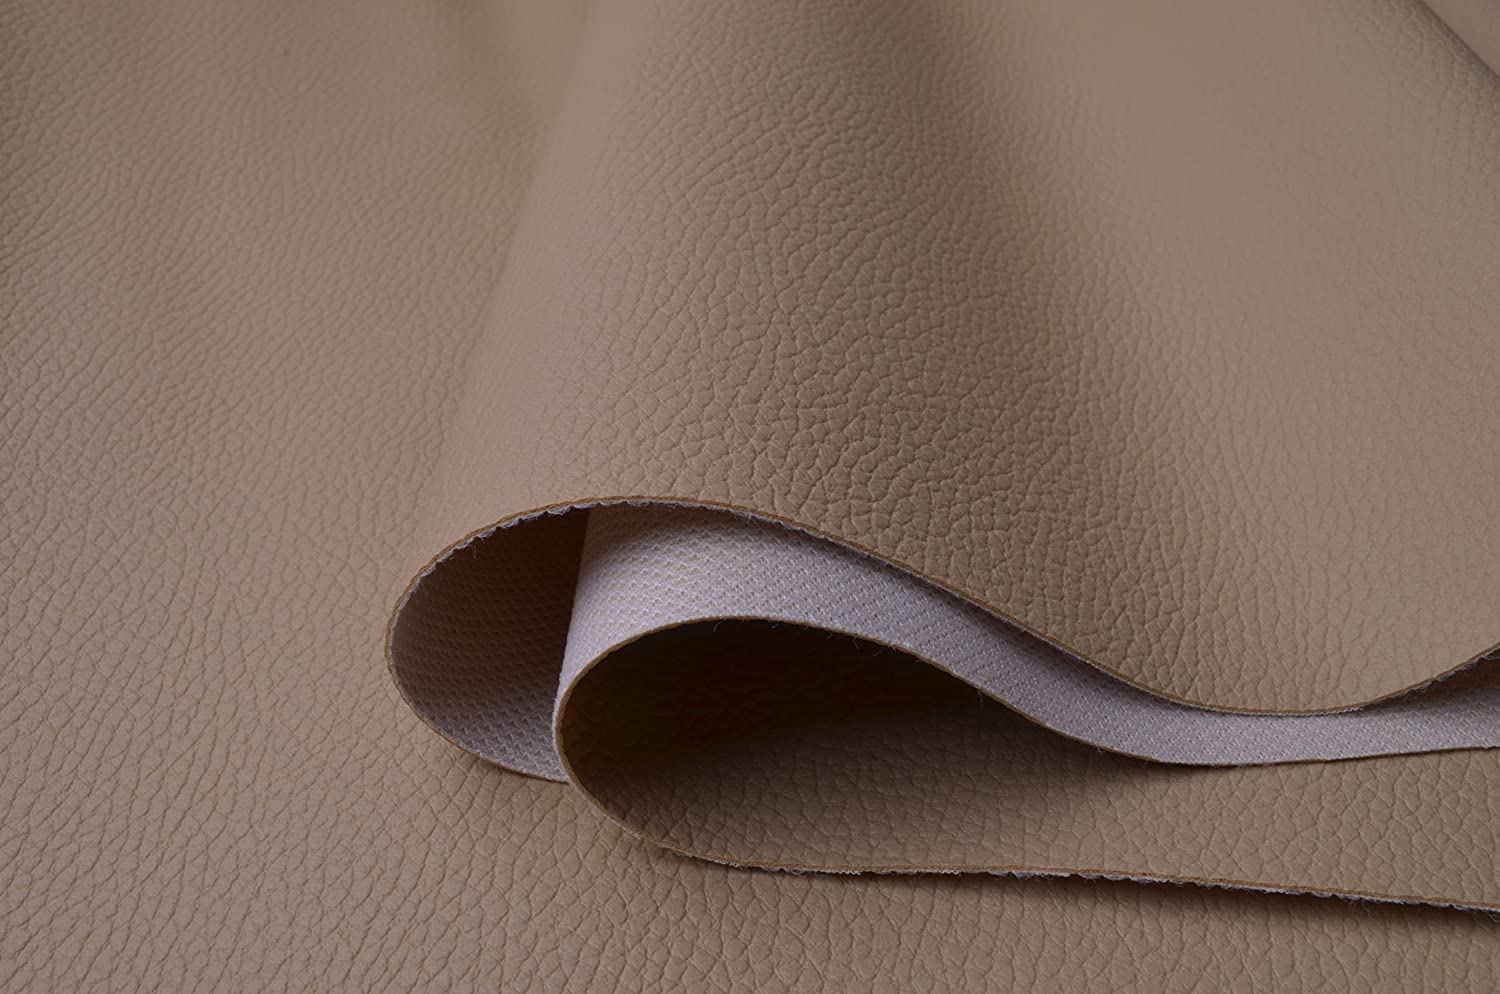 Excellent Wento Wearproof Beige Sofa Leather Fabric Furniture Leather Car Seat Leather Fabric Upholster Pleather For Furniture Cover Table Cover Handrail Download Free Architecture Designs Scobabritishbridgeorg